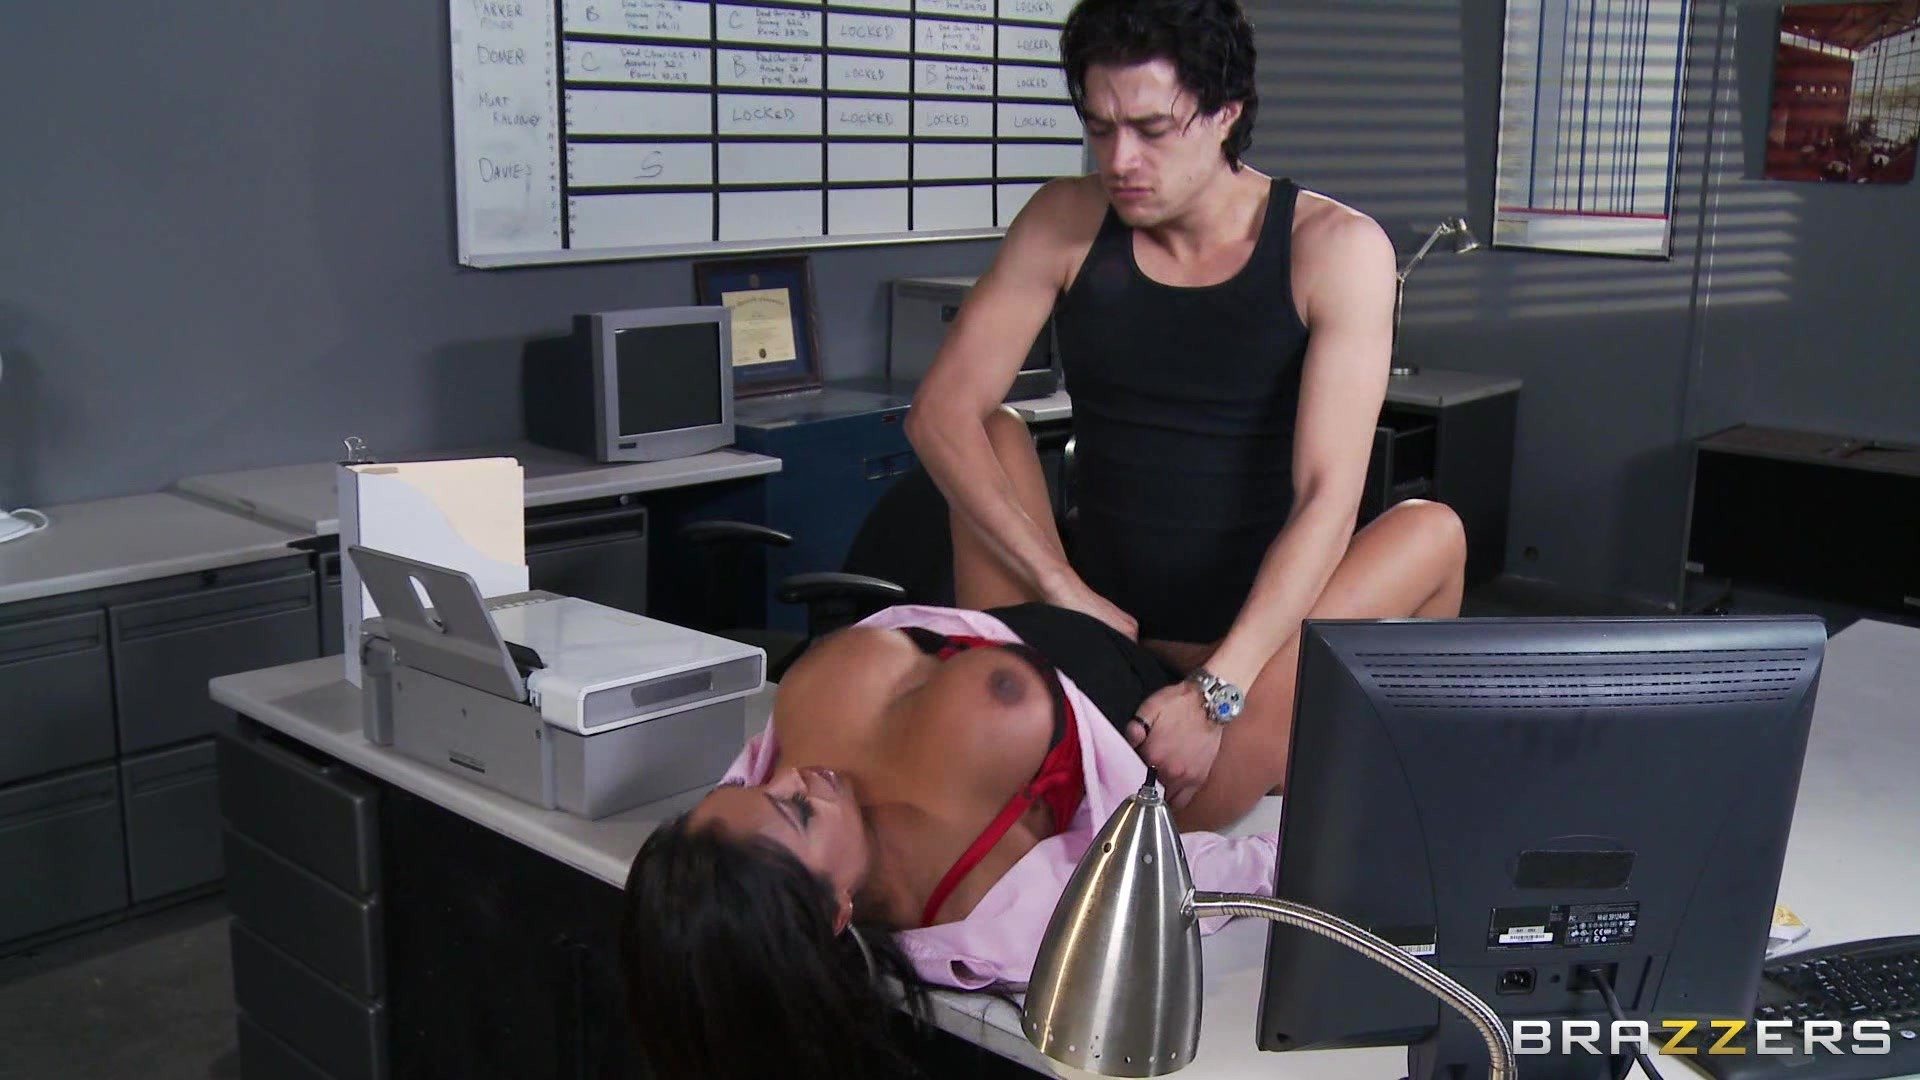 big tits at work vol. 18 streaming or download video on demand